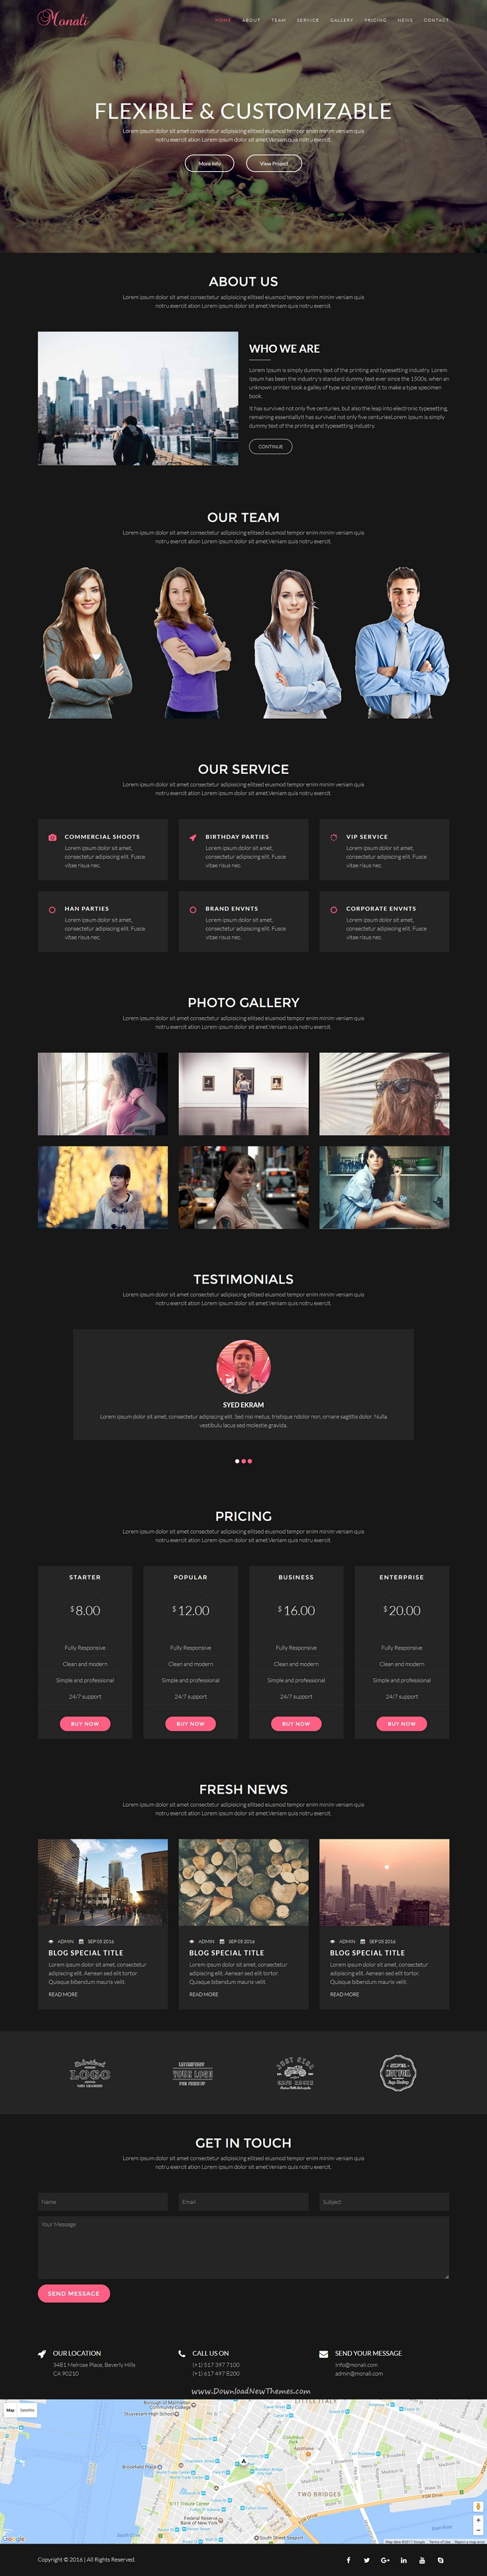 Monali - Responsive HTML5 Template   Clean design, Template and UI ...